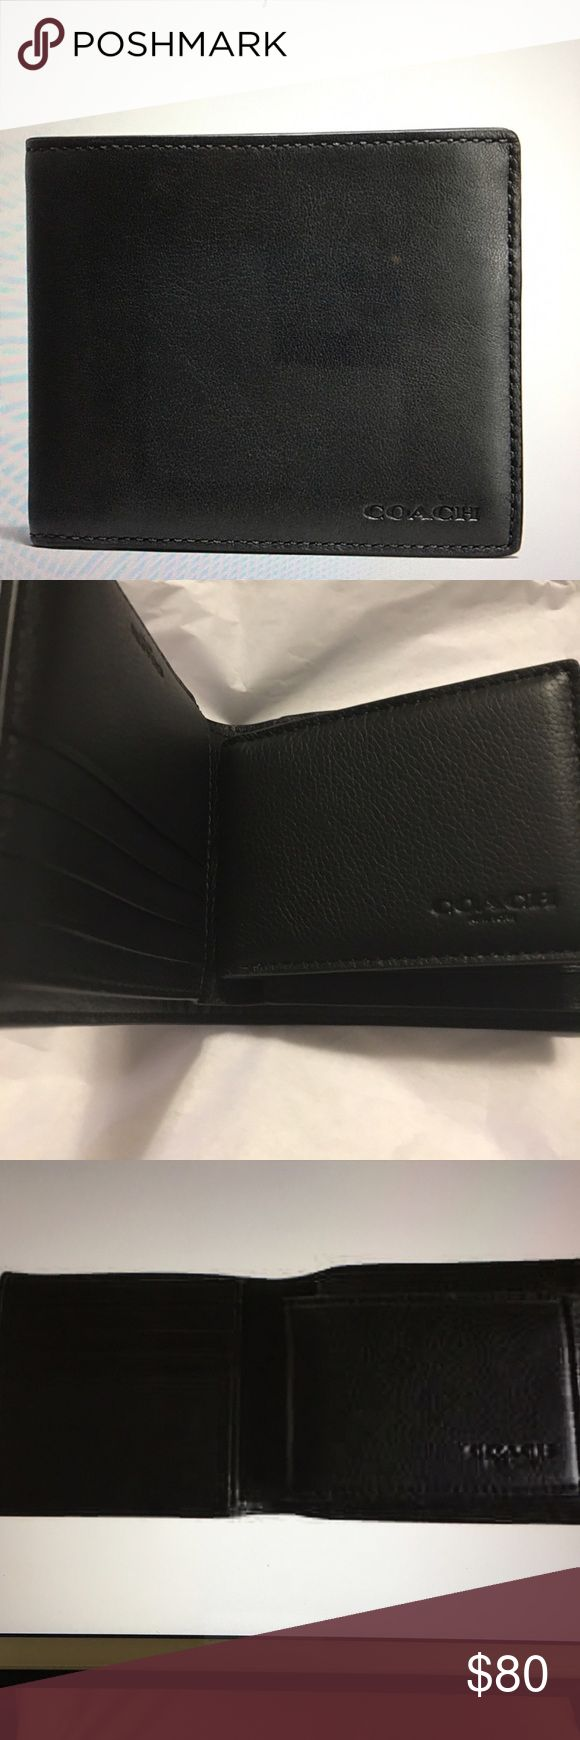 NWT compact ID Wallet NWT compact ID Wallet in Sport Calf Leather.  Eight credit card slots. Full length bill compartments. Removable insert with ID window and two credit card slots Coach Bags Wallets